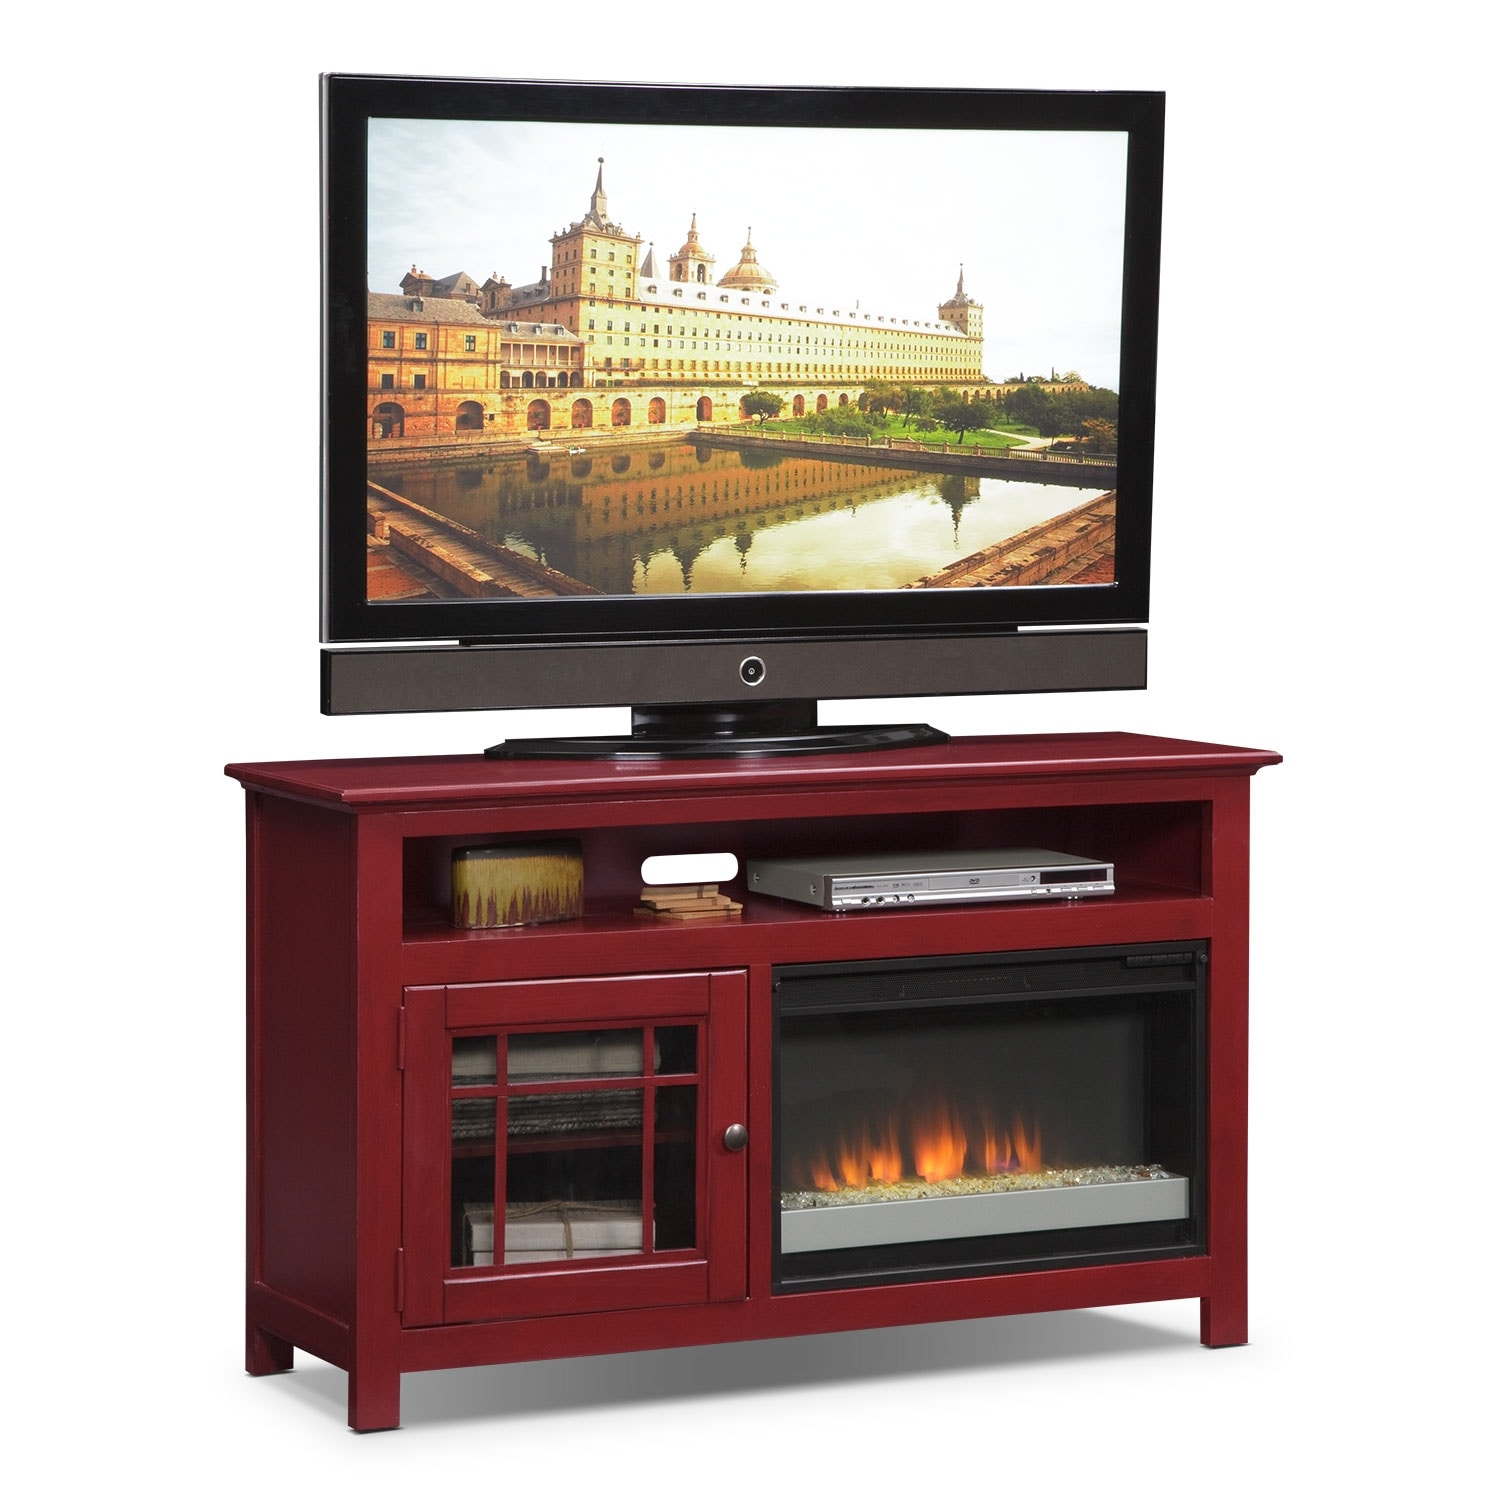 """Merrick 54"""" Fireplace TV Stand with Contemporary Insert - Red"""